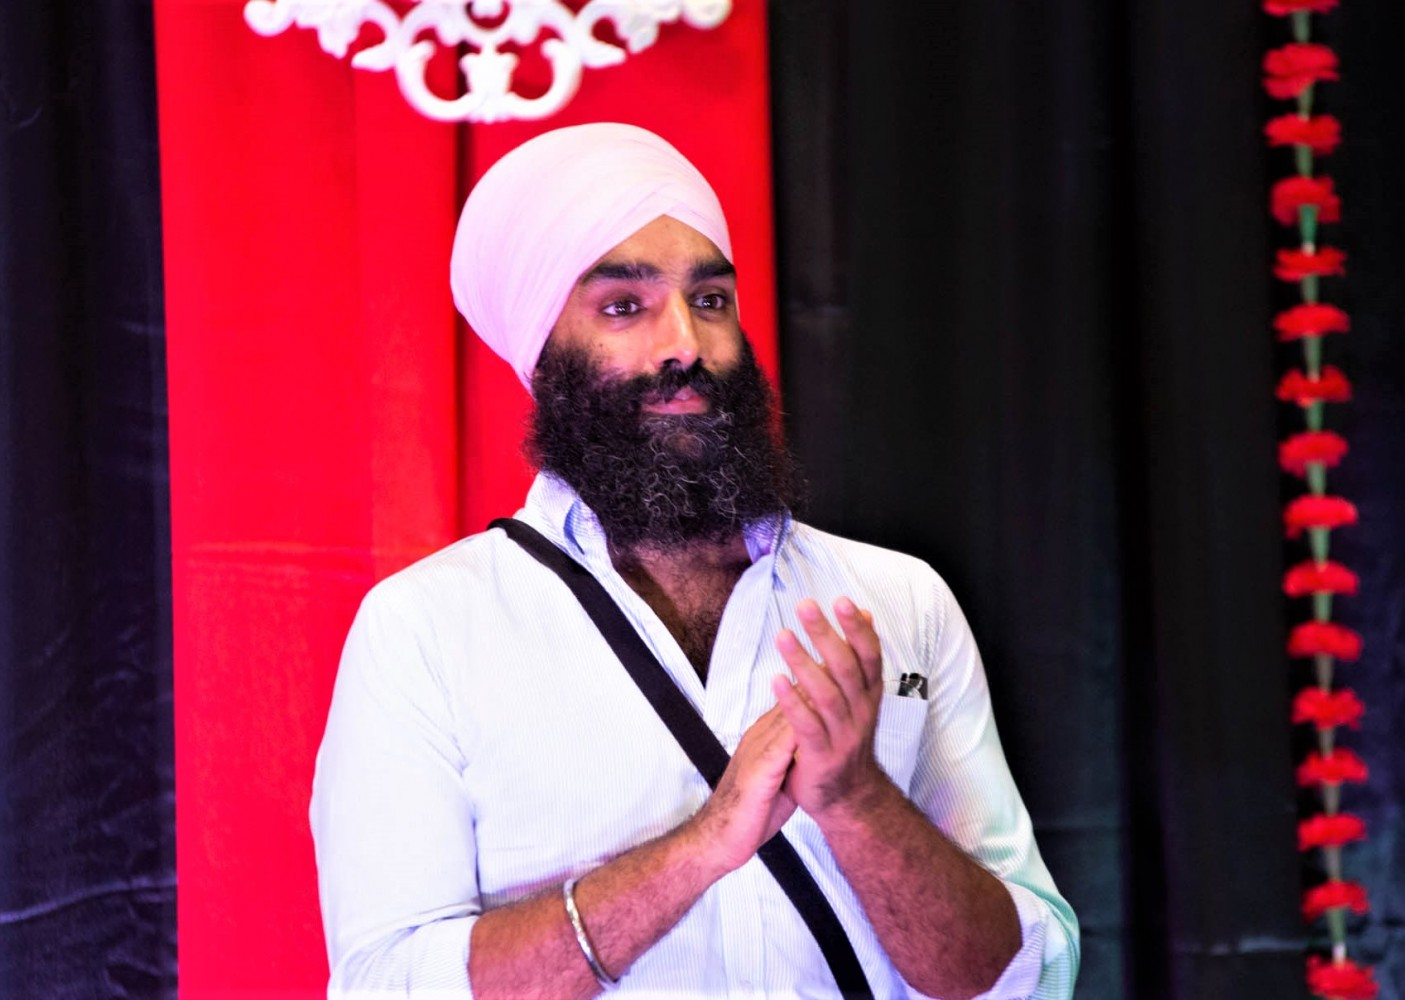 UPDATE: 'There seems to be a pattern of not caring' – Brampton MPP defends rights of Sikh paramedics